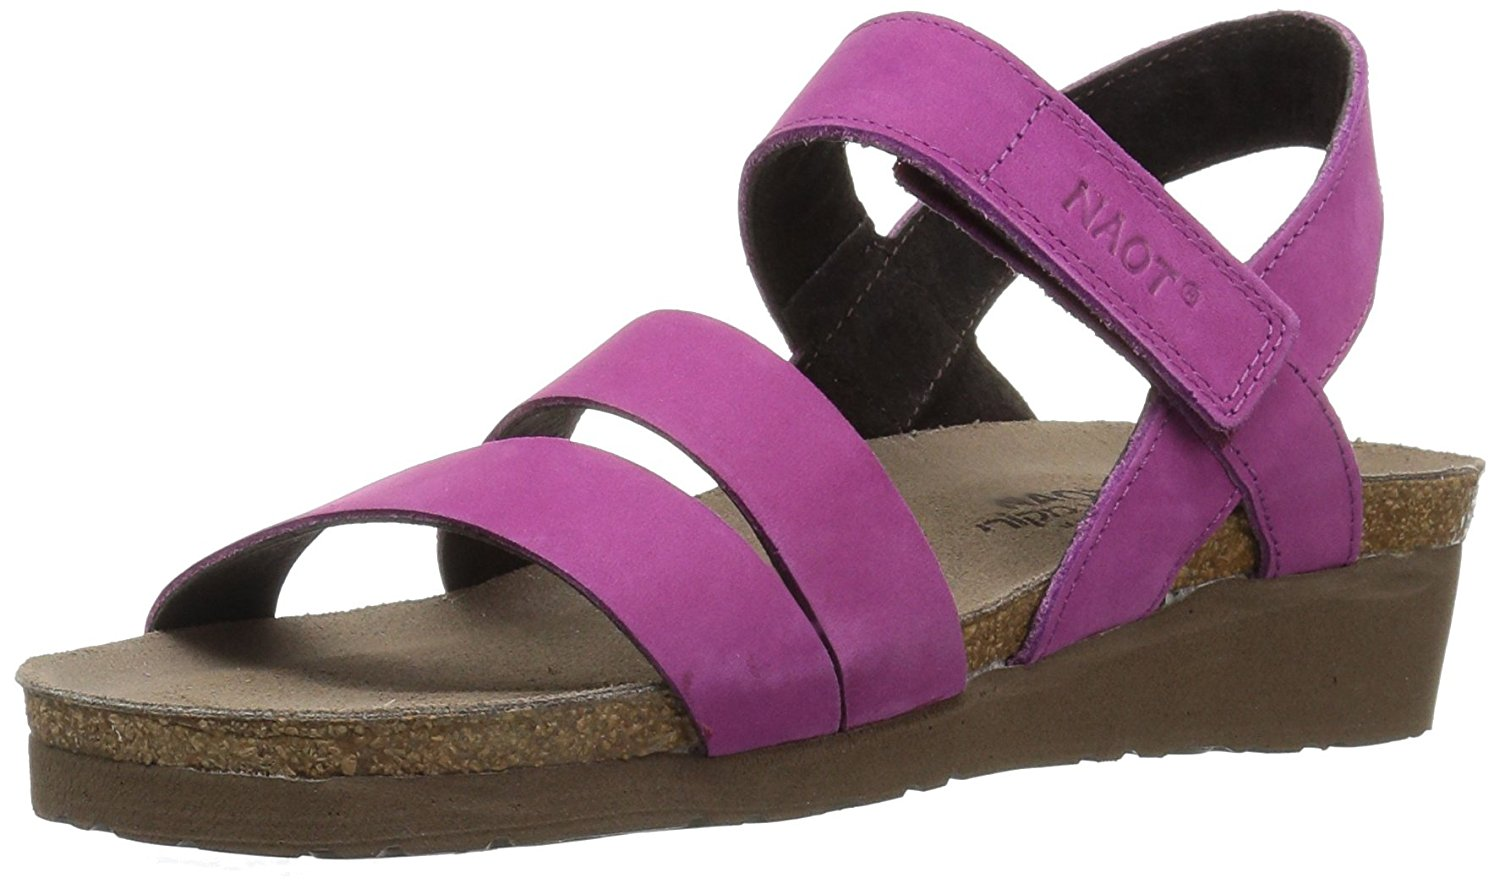 bf961616a0a0 Get Quotations · NAOT Women s Kayla Wedge Sandal